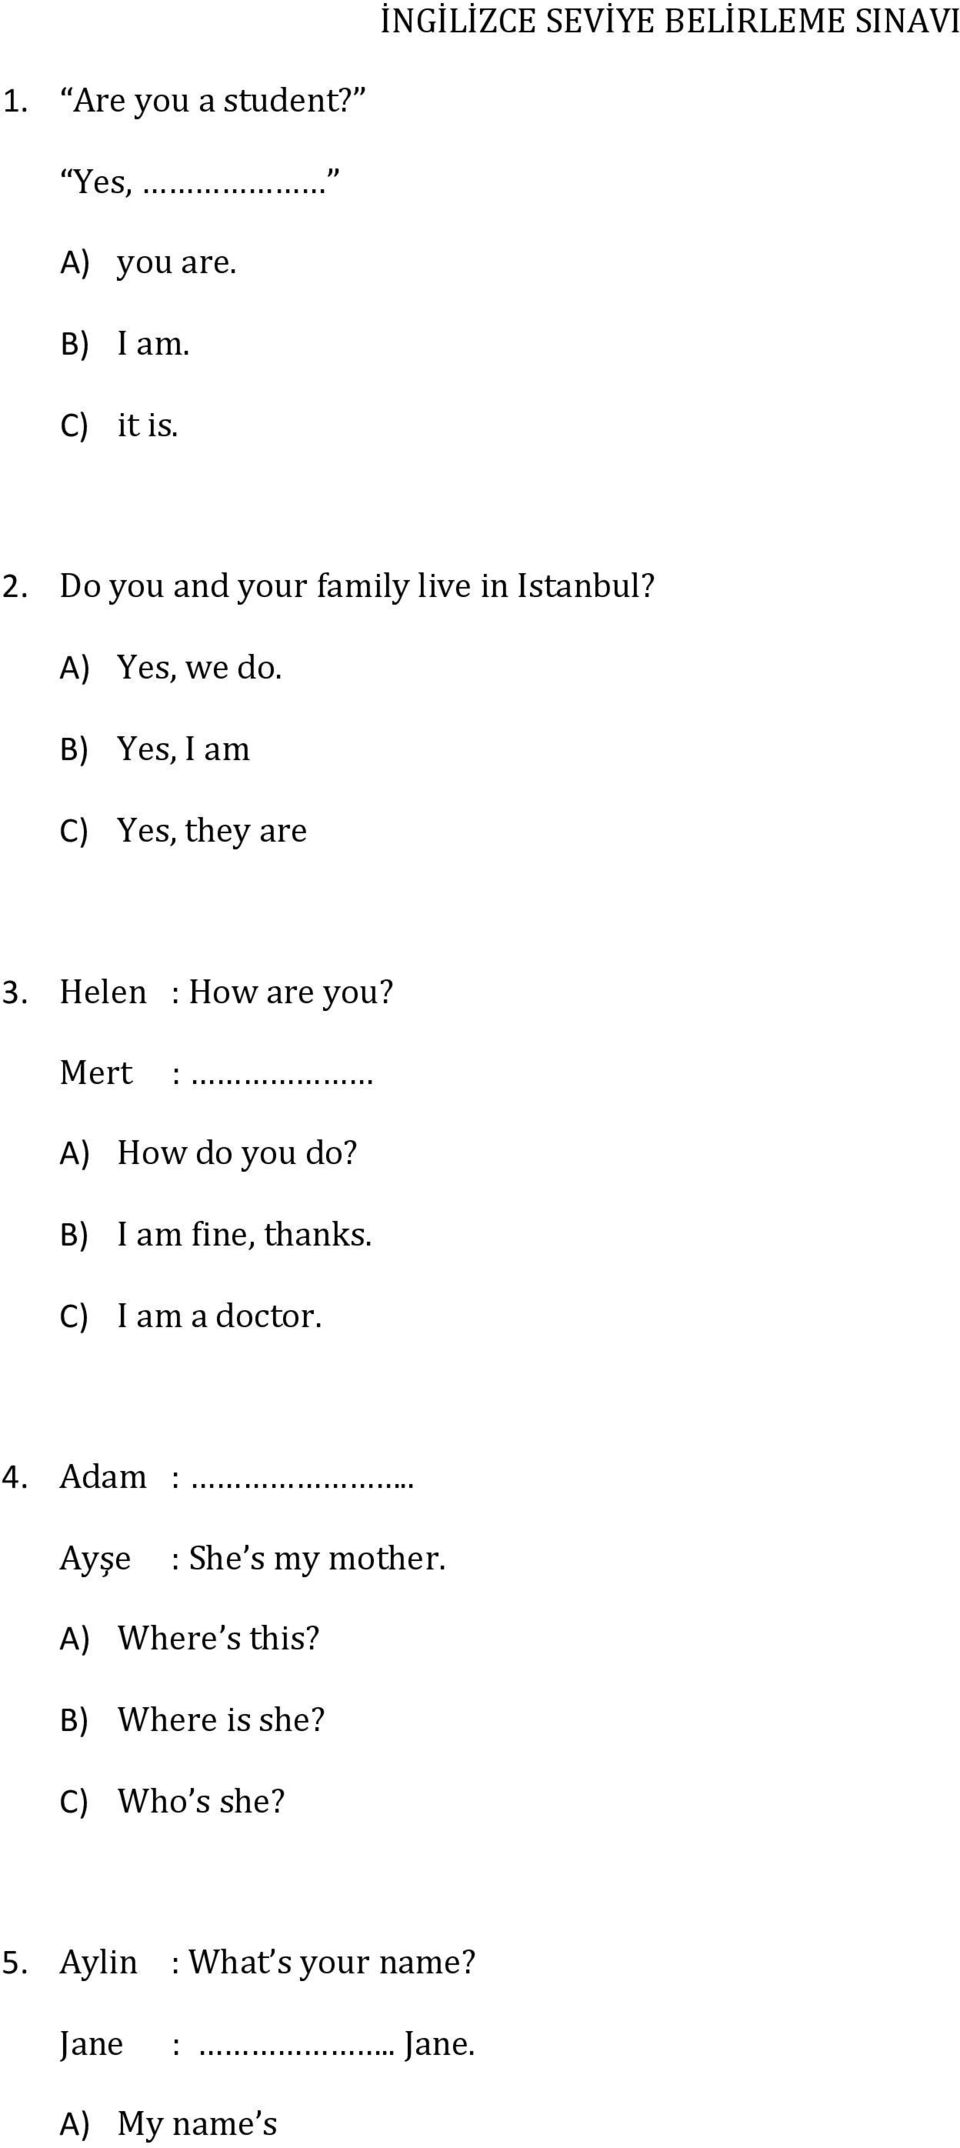 Helen : How are you? Mert : A) How do you do? B) I am fine, thanks. C) I am a doctor. 4. Adam :.